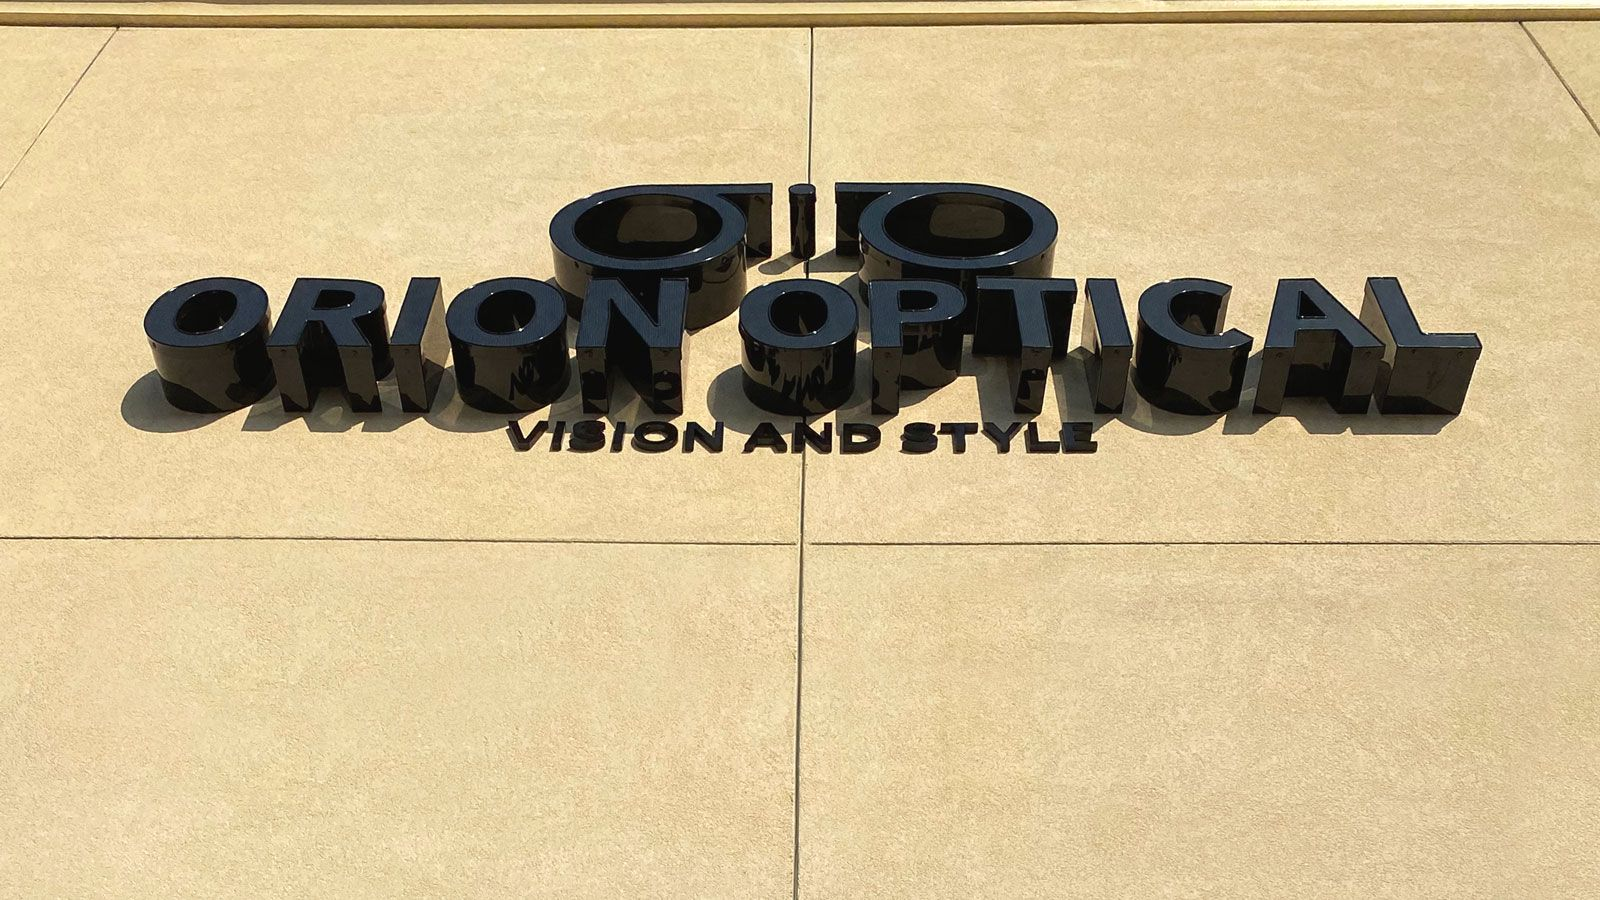 orion optical led letters